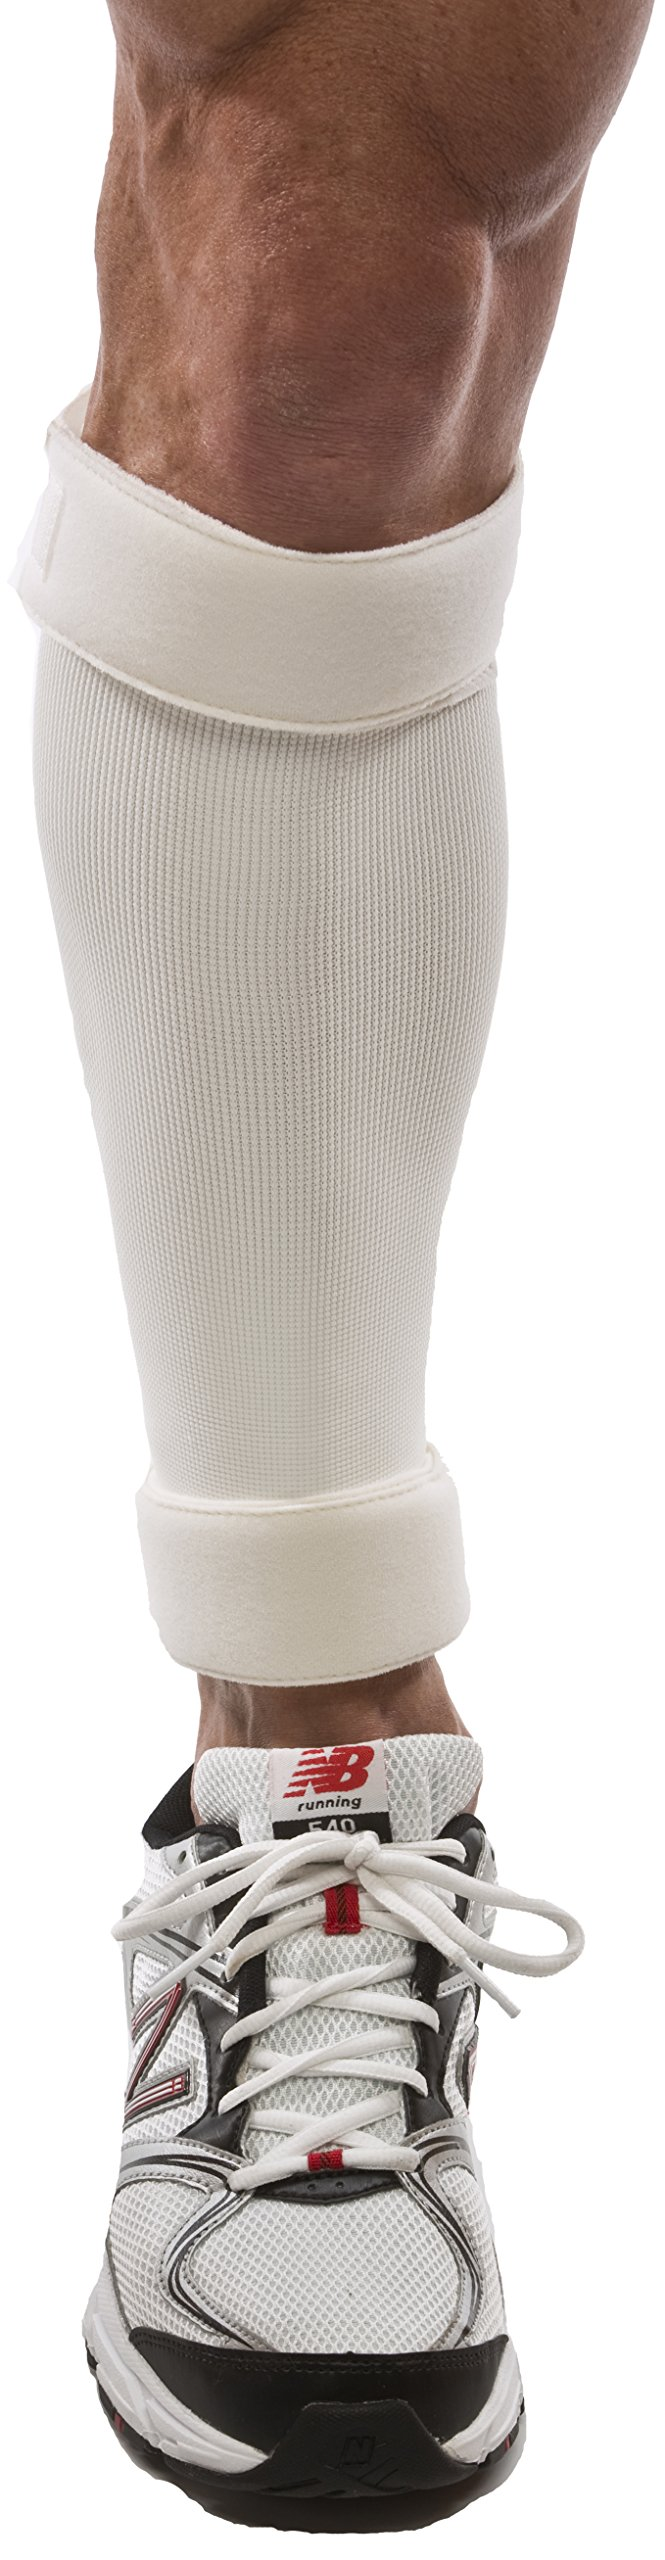 Cho-Pat Shin Splint - Compression Sleeve Delivers Support, Reduces Pain, and Enhances Recovery - Designed by Medical Professionals (White, Large 16''-20'')